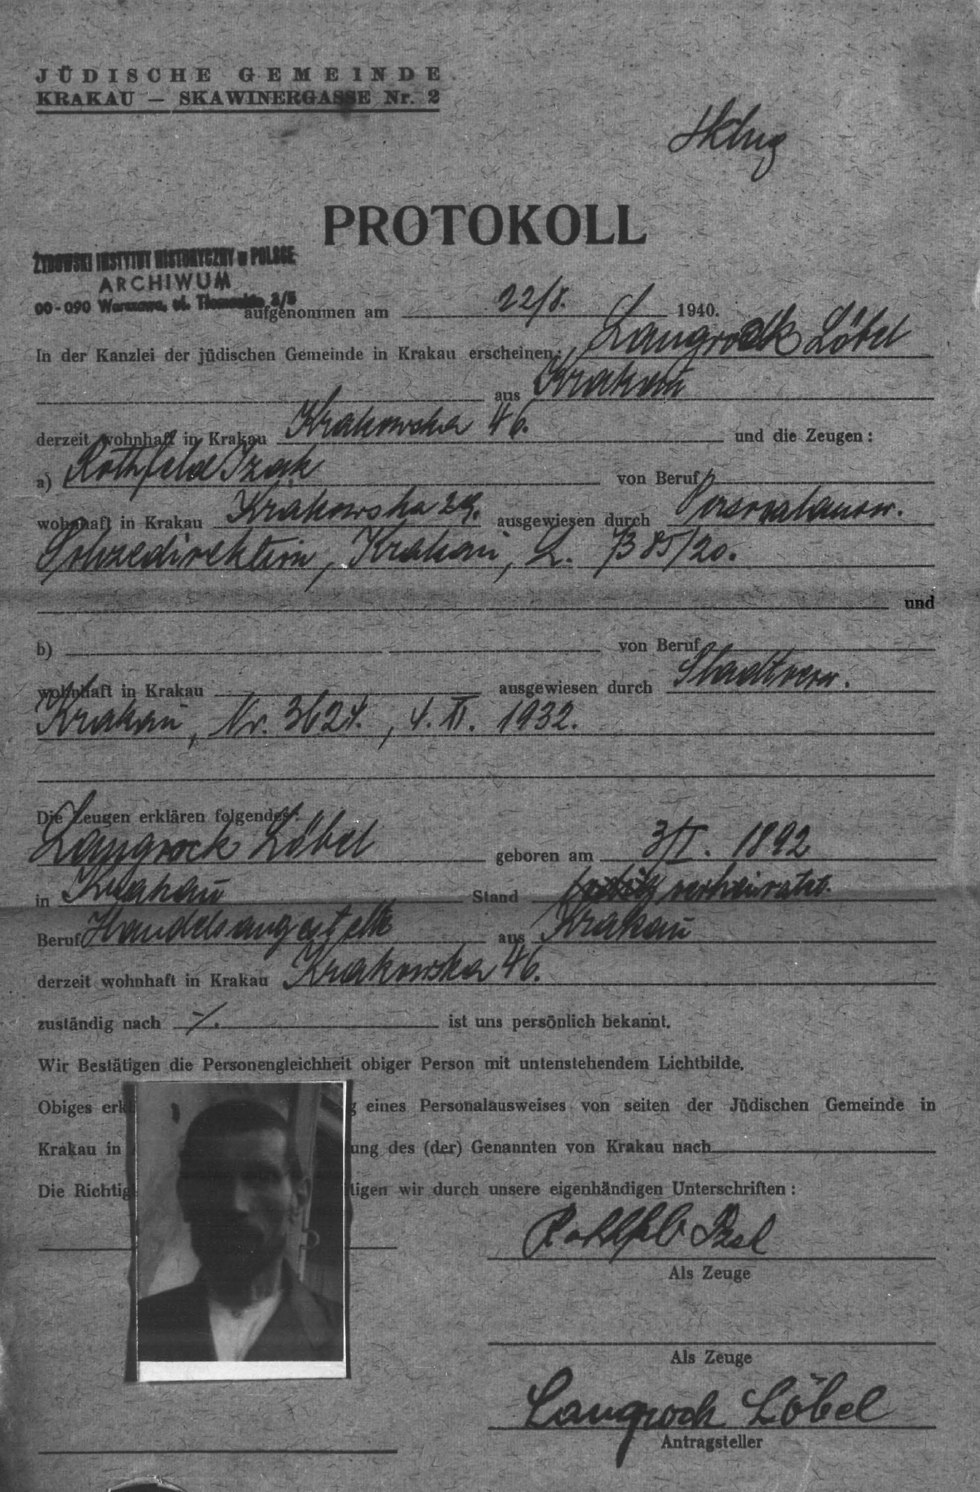 A form of ID given to Jews allowed to stay in Krakow in the first years of the occupation.